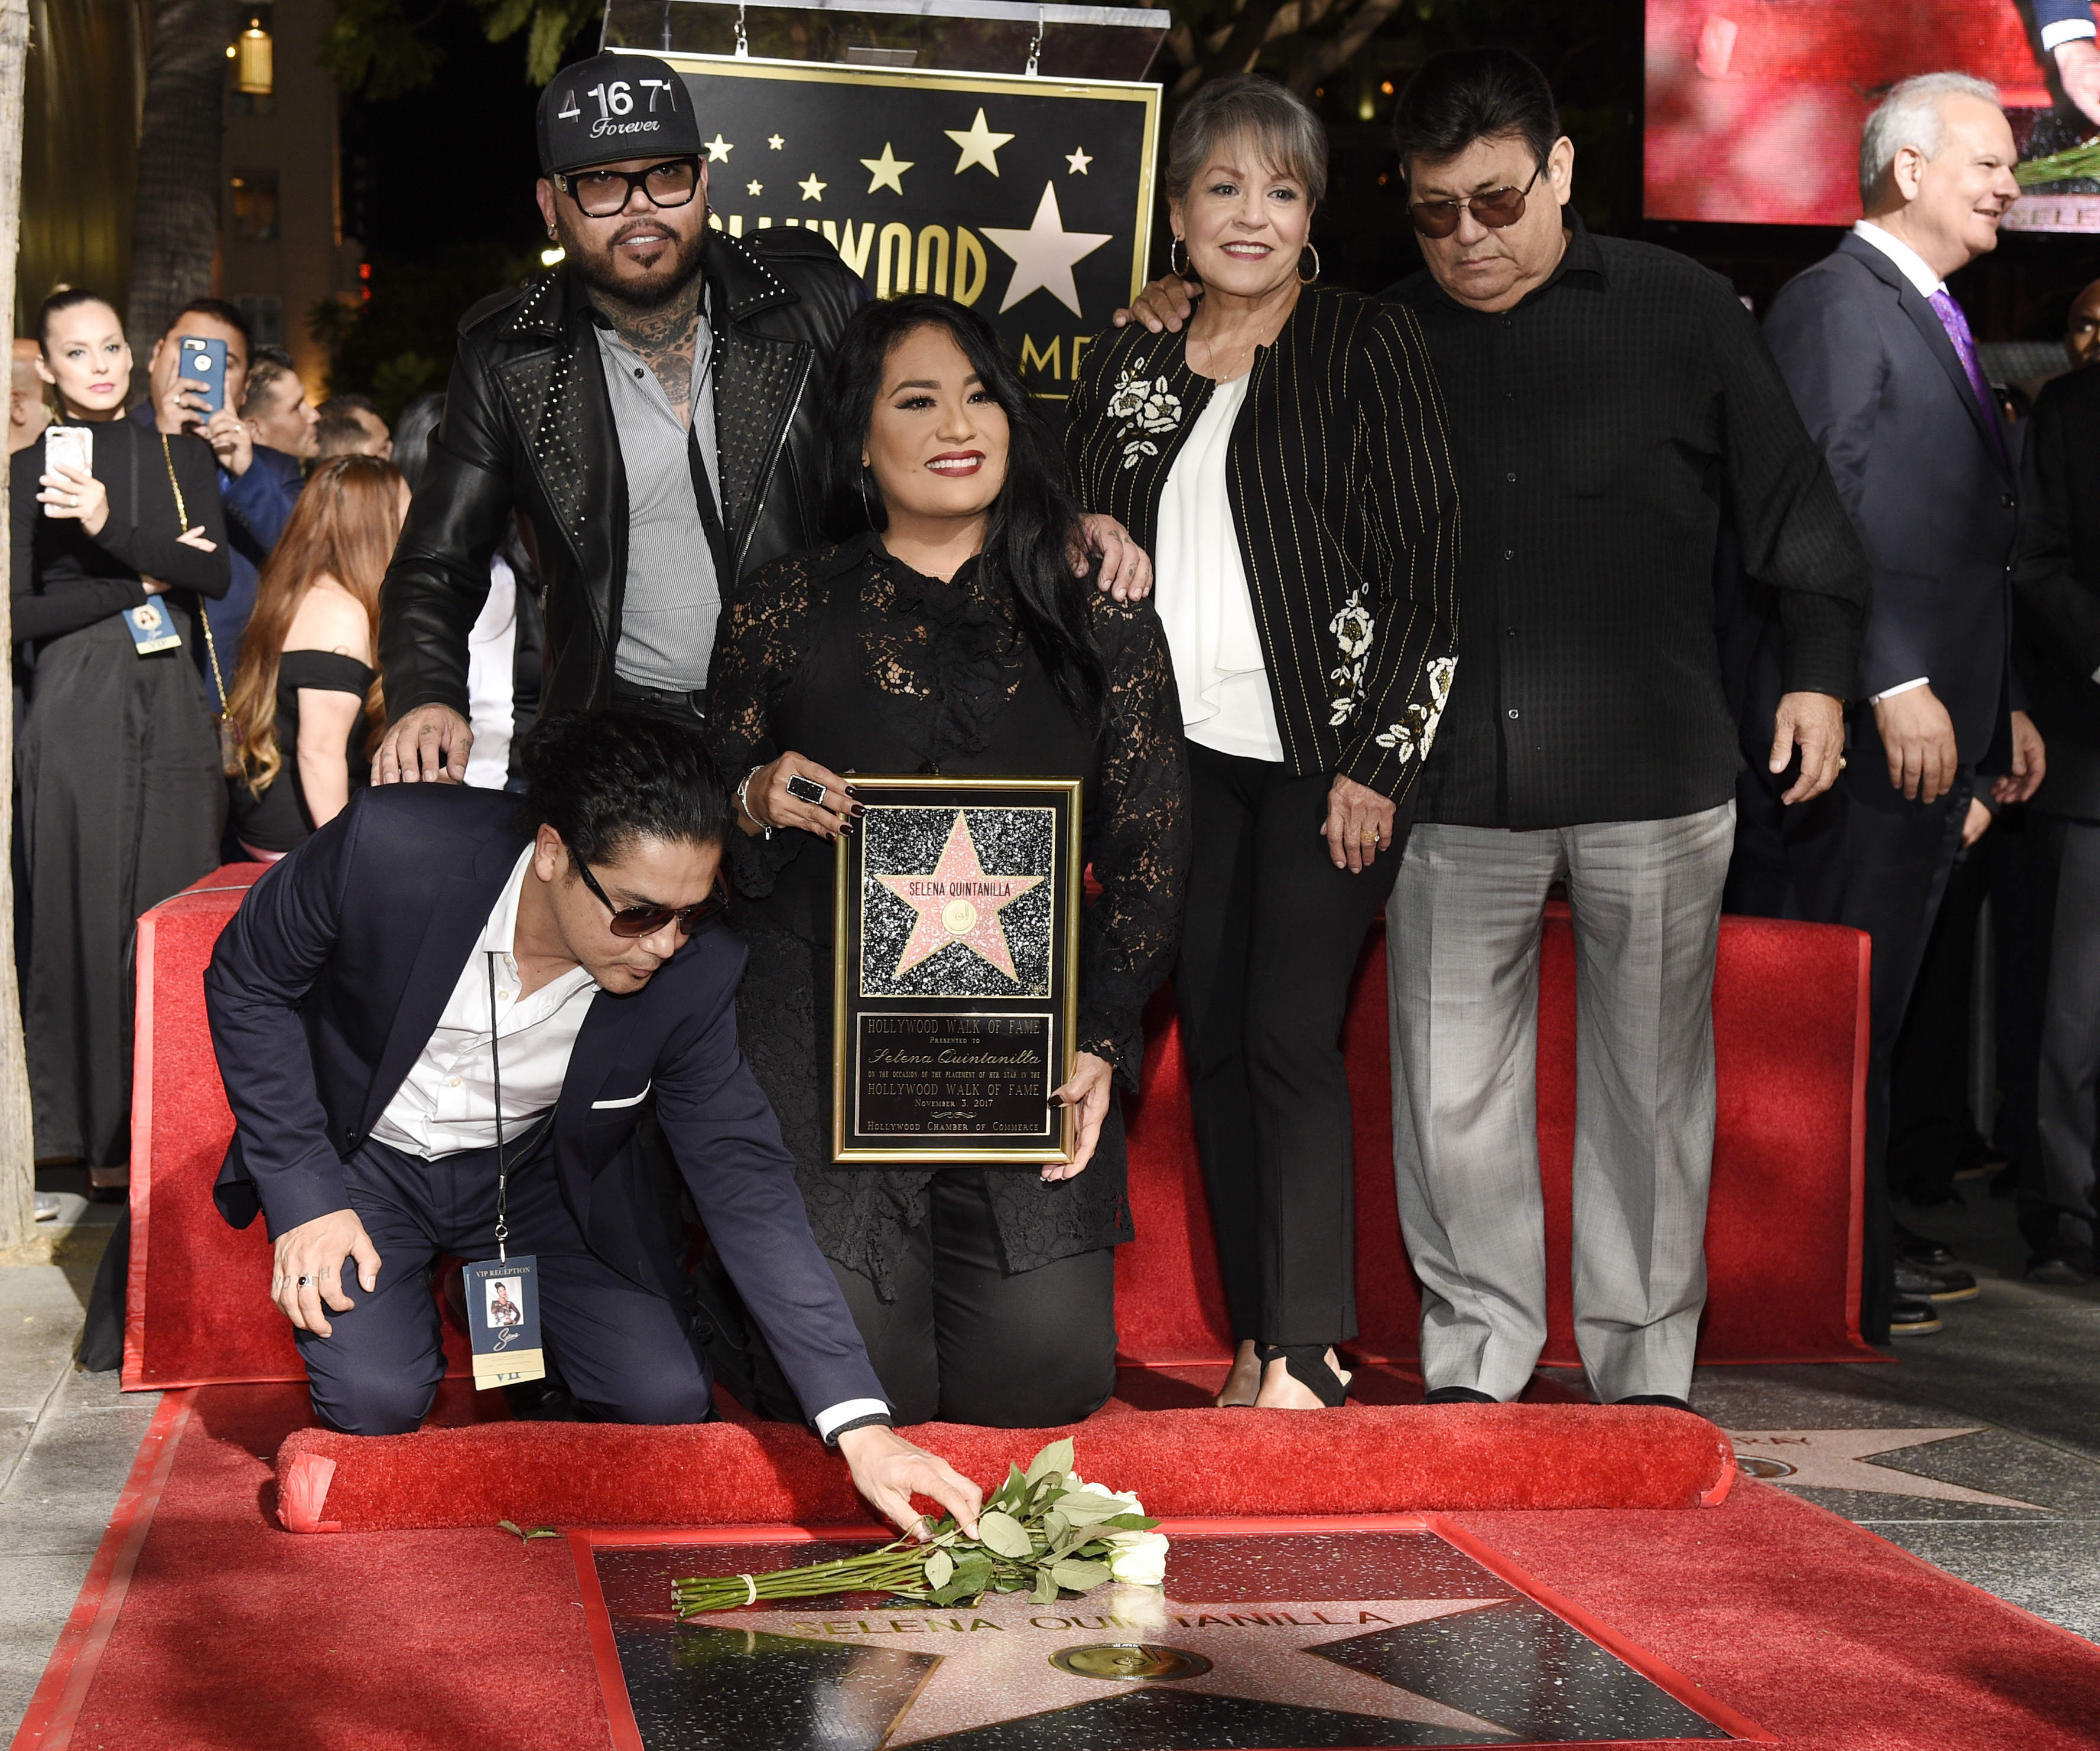 <div class='meta'><div class='origin-logo' data-origin='none'></div><span class='caption-text' data-credit='Chris Pizzello/Invision/AP'>Chris Perez, bottom left, the former husband of the late singer Selena Quintanilla, puts flowers down on her new star on the Hollywood Walk of Fame.</span></div>